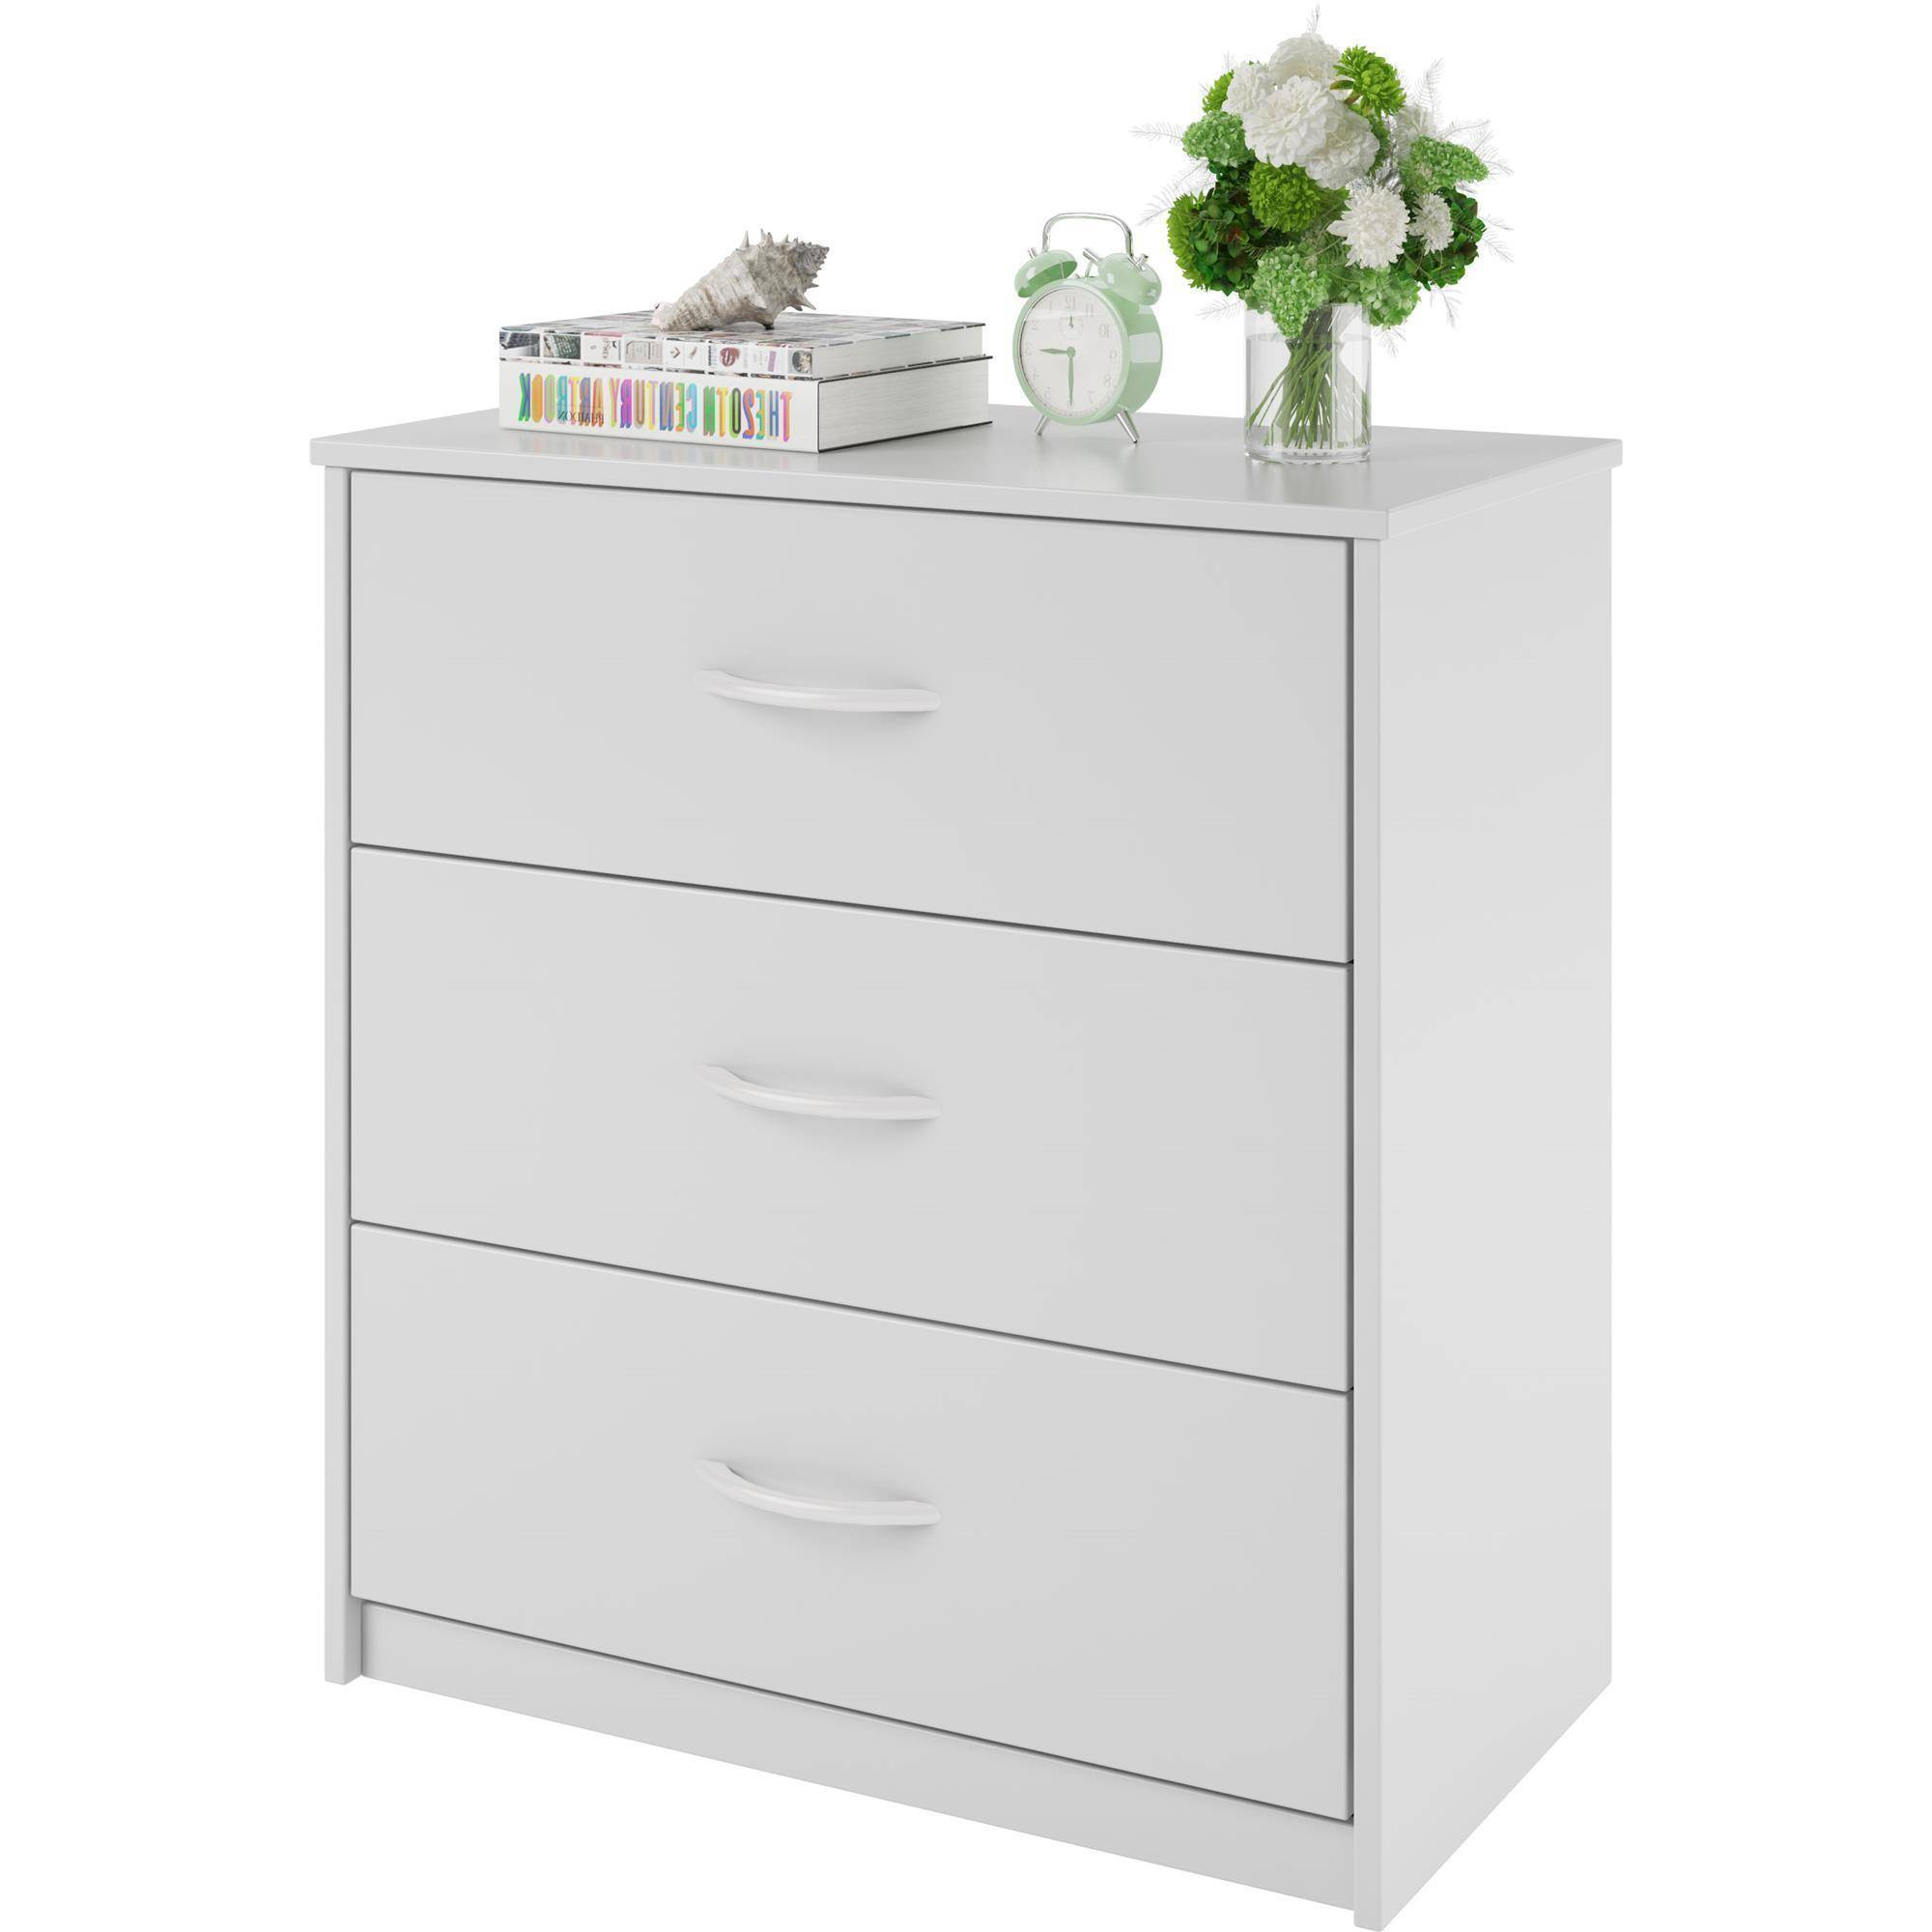 design small recommended best ikea compartment drawer space gray dresser chest rectangle most wooden painted generous storage dark